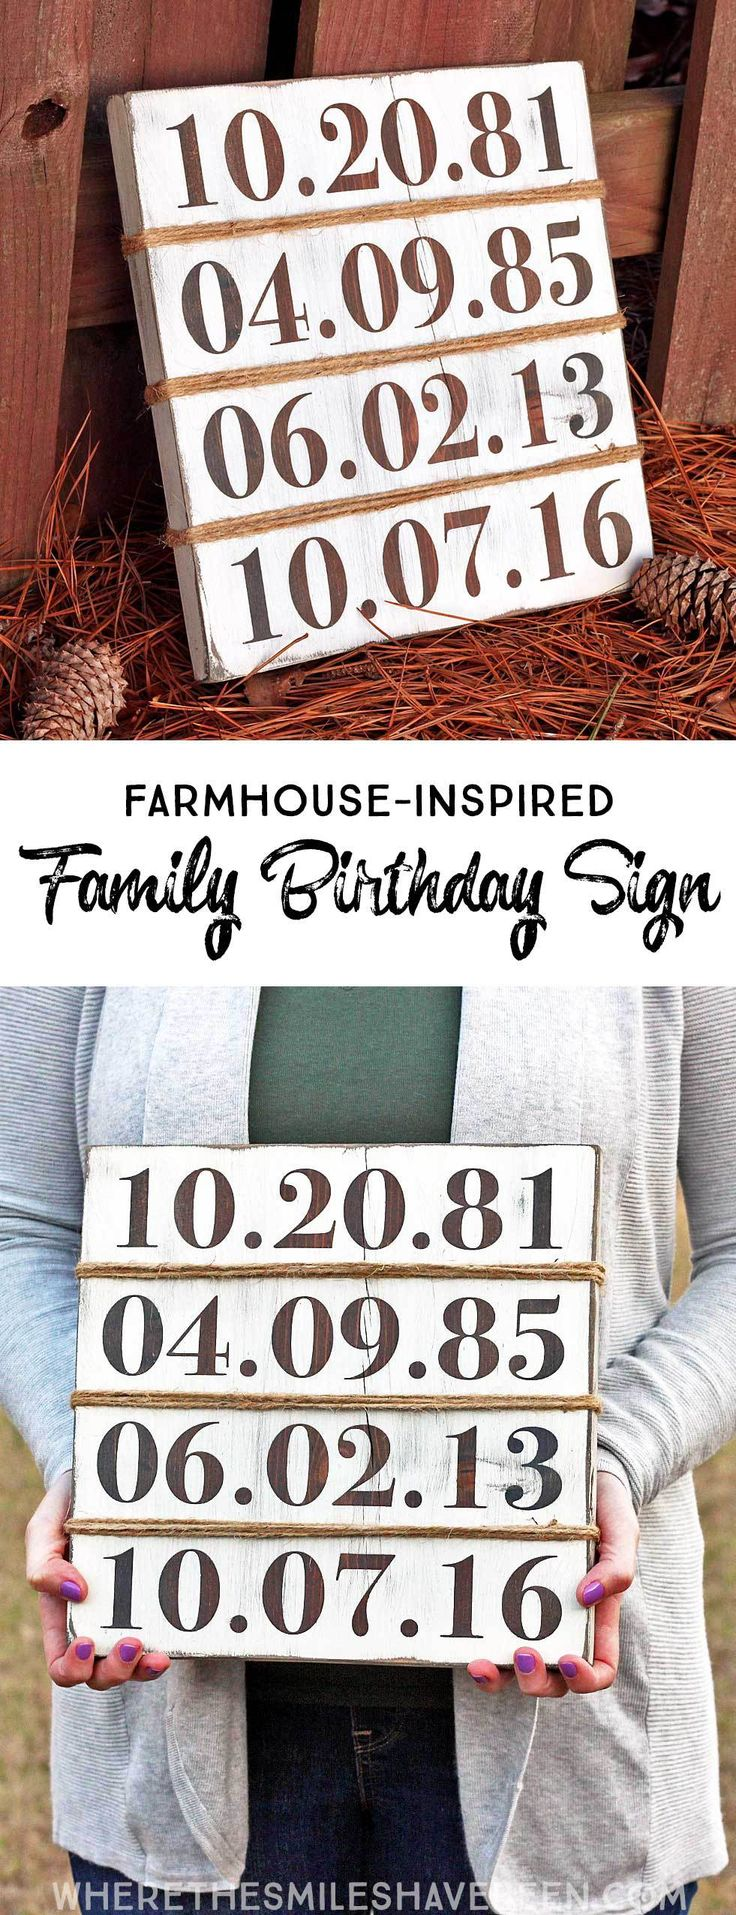 Rustic Farmhouse-Inspired Family Birthday Sign | Where The Smiles Have Been #farmhouse